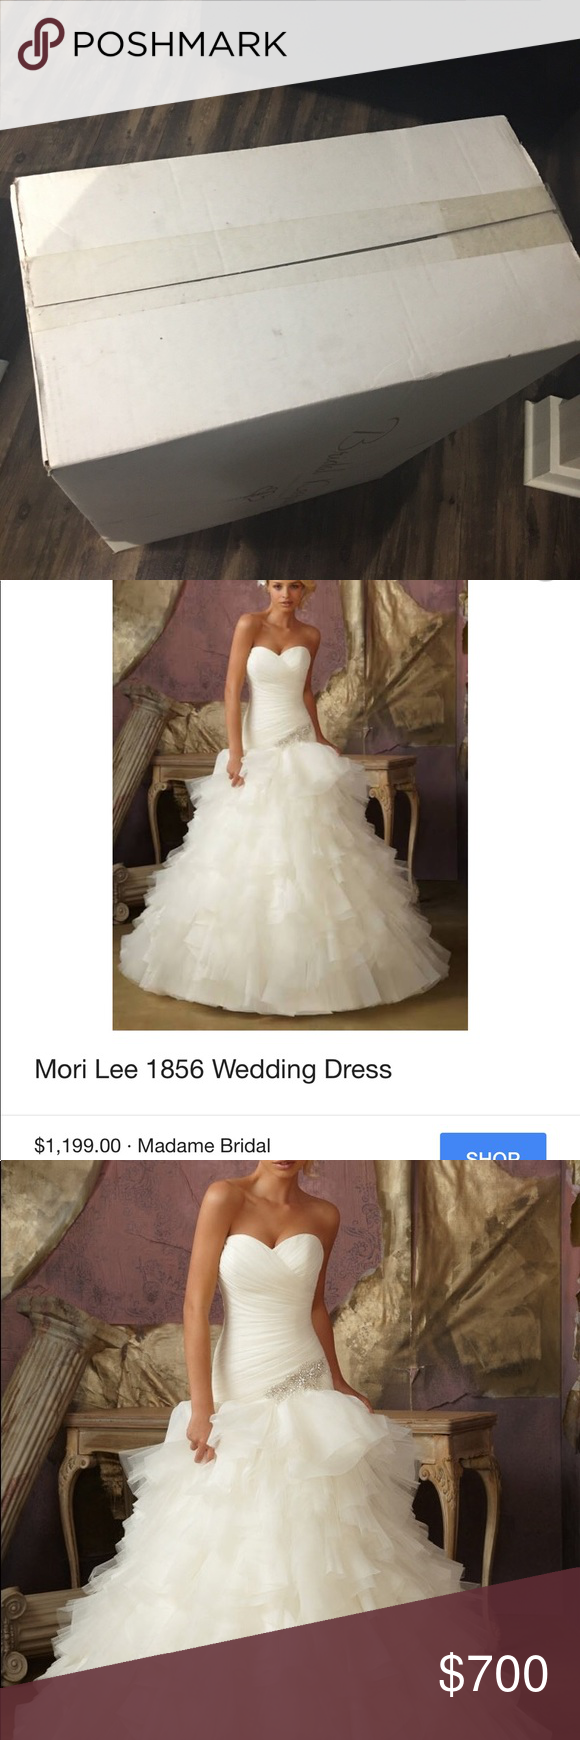 Wedding dress mori lee wedding dress only worn once paid